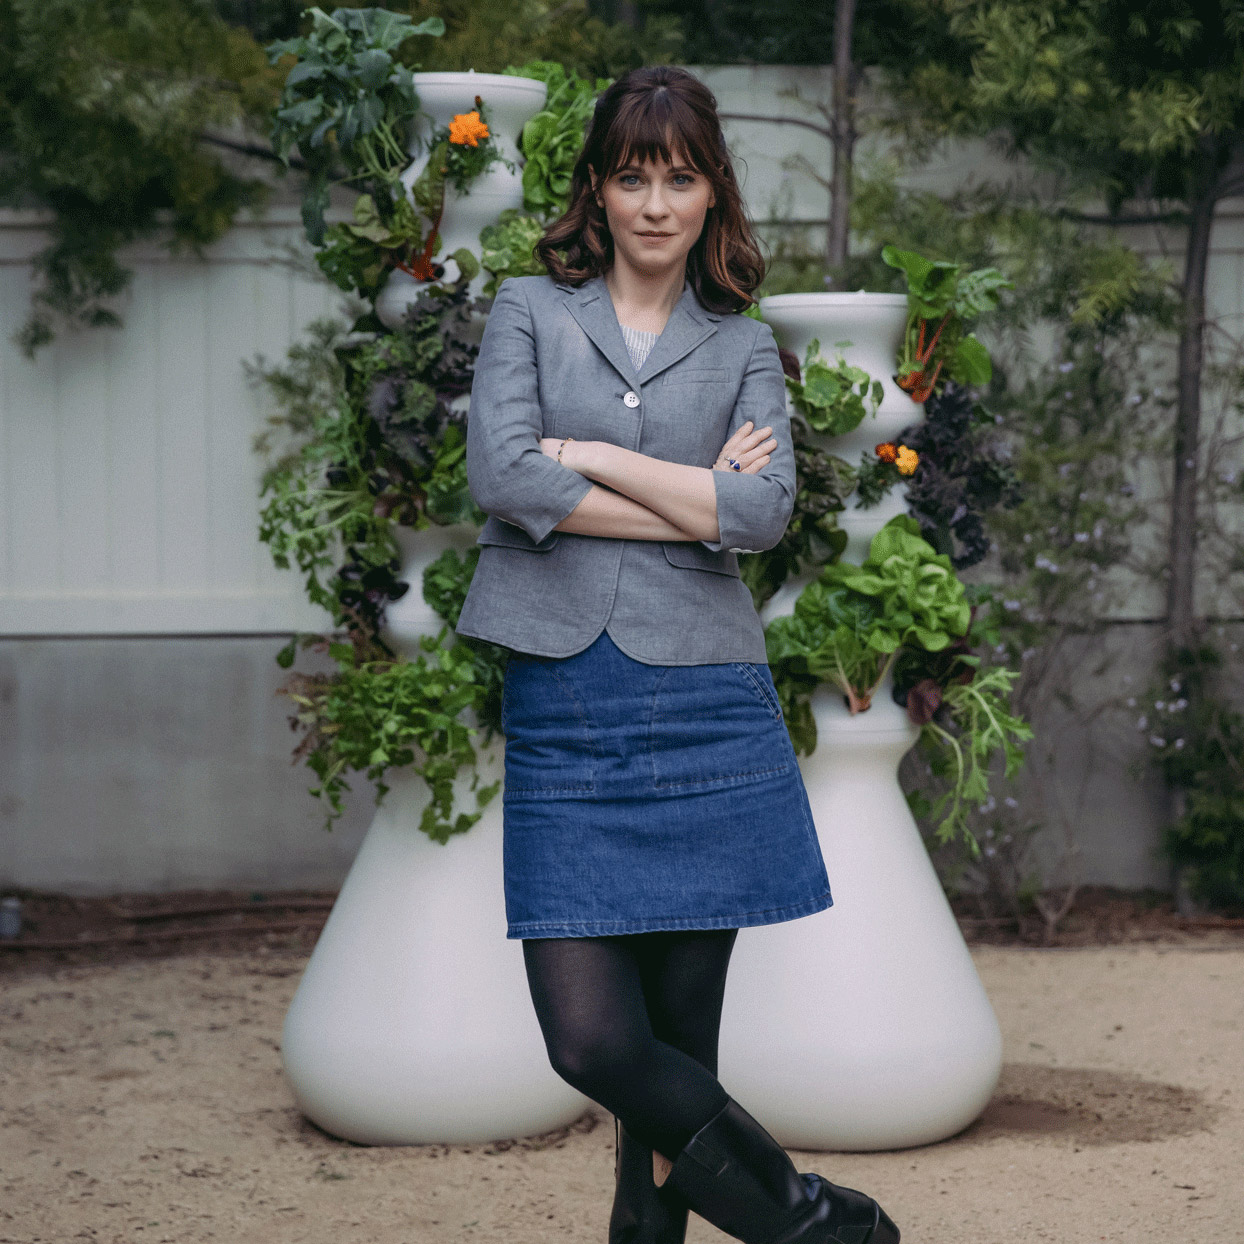 Zooey Deschanel's Company Makes It So Easy to Grow Your Own Vegetables, You Literally Can't Mess it up